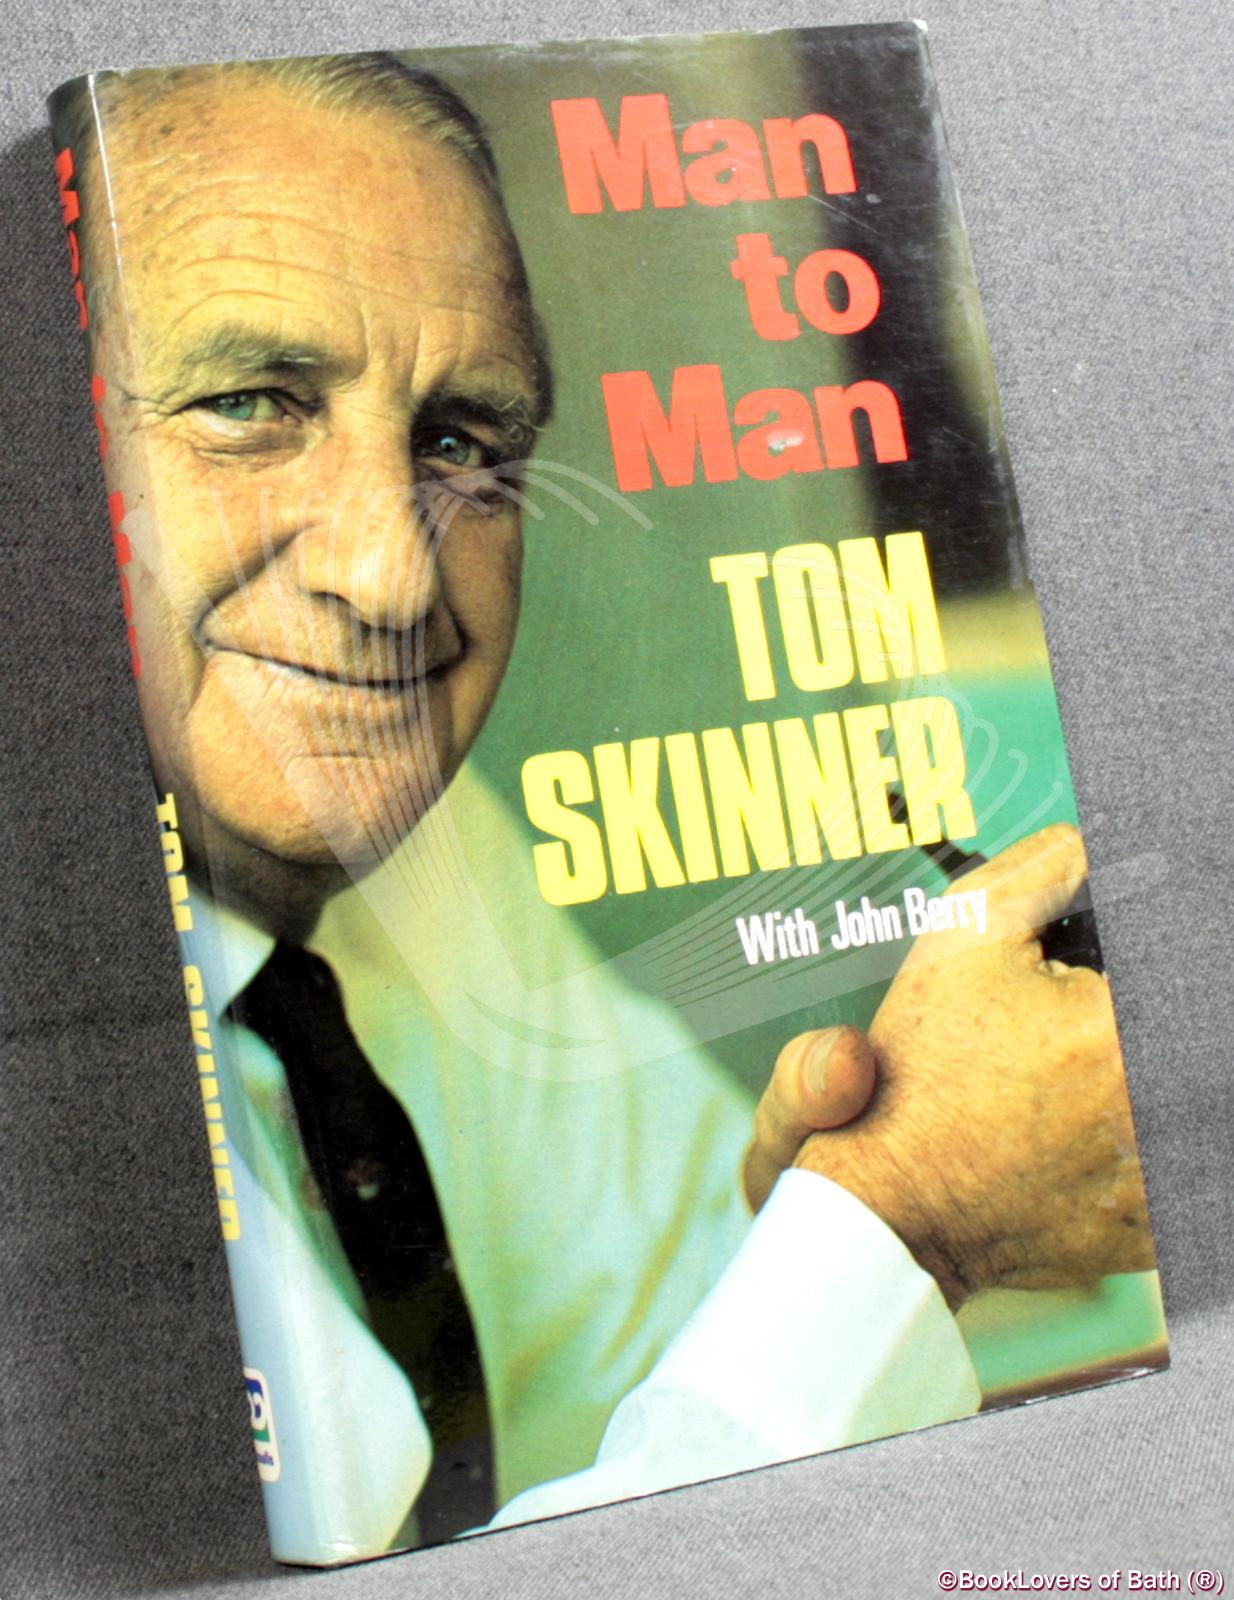 Man to Man - Tom Skinner with John Berry